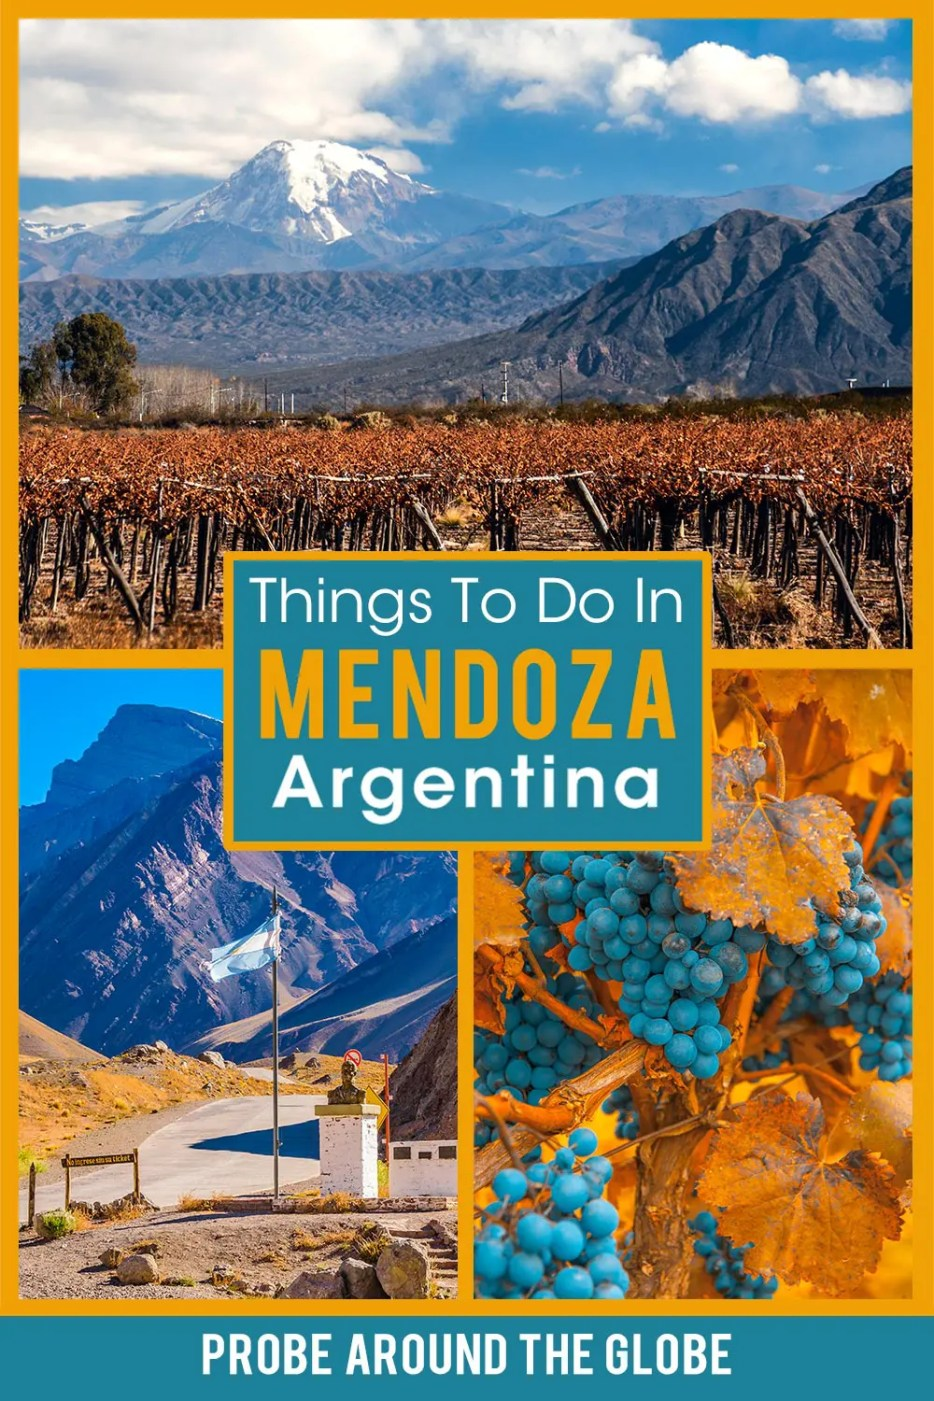 What are the best things to do in Mendoza Argentina, besides wine? Read my list of fun Mendoza activities that include nature, food & history